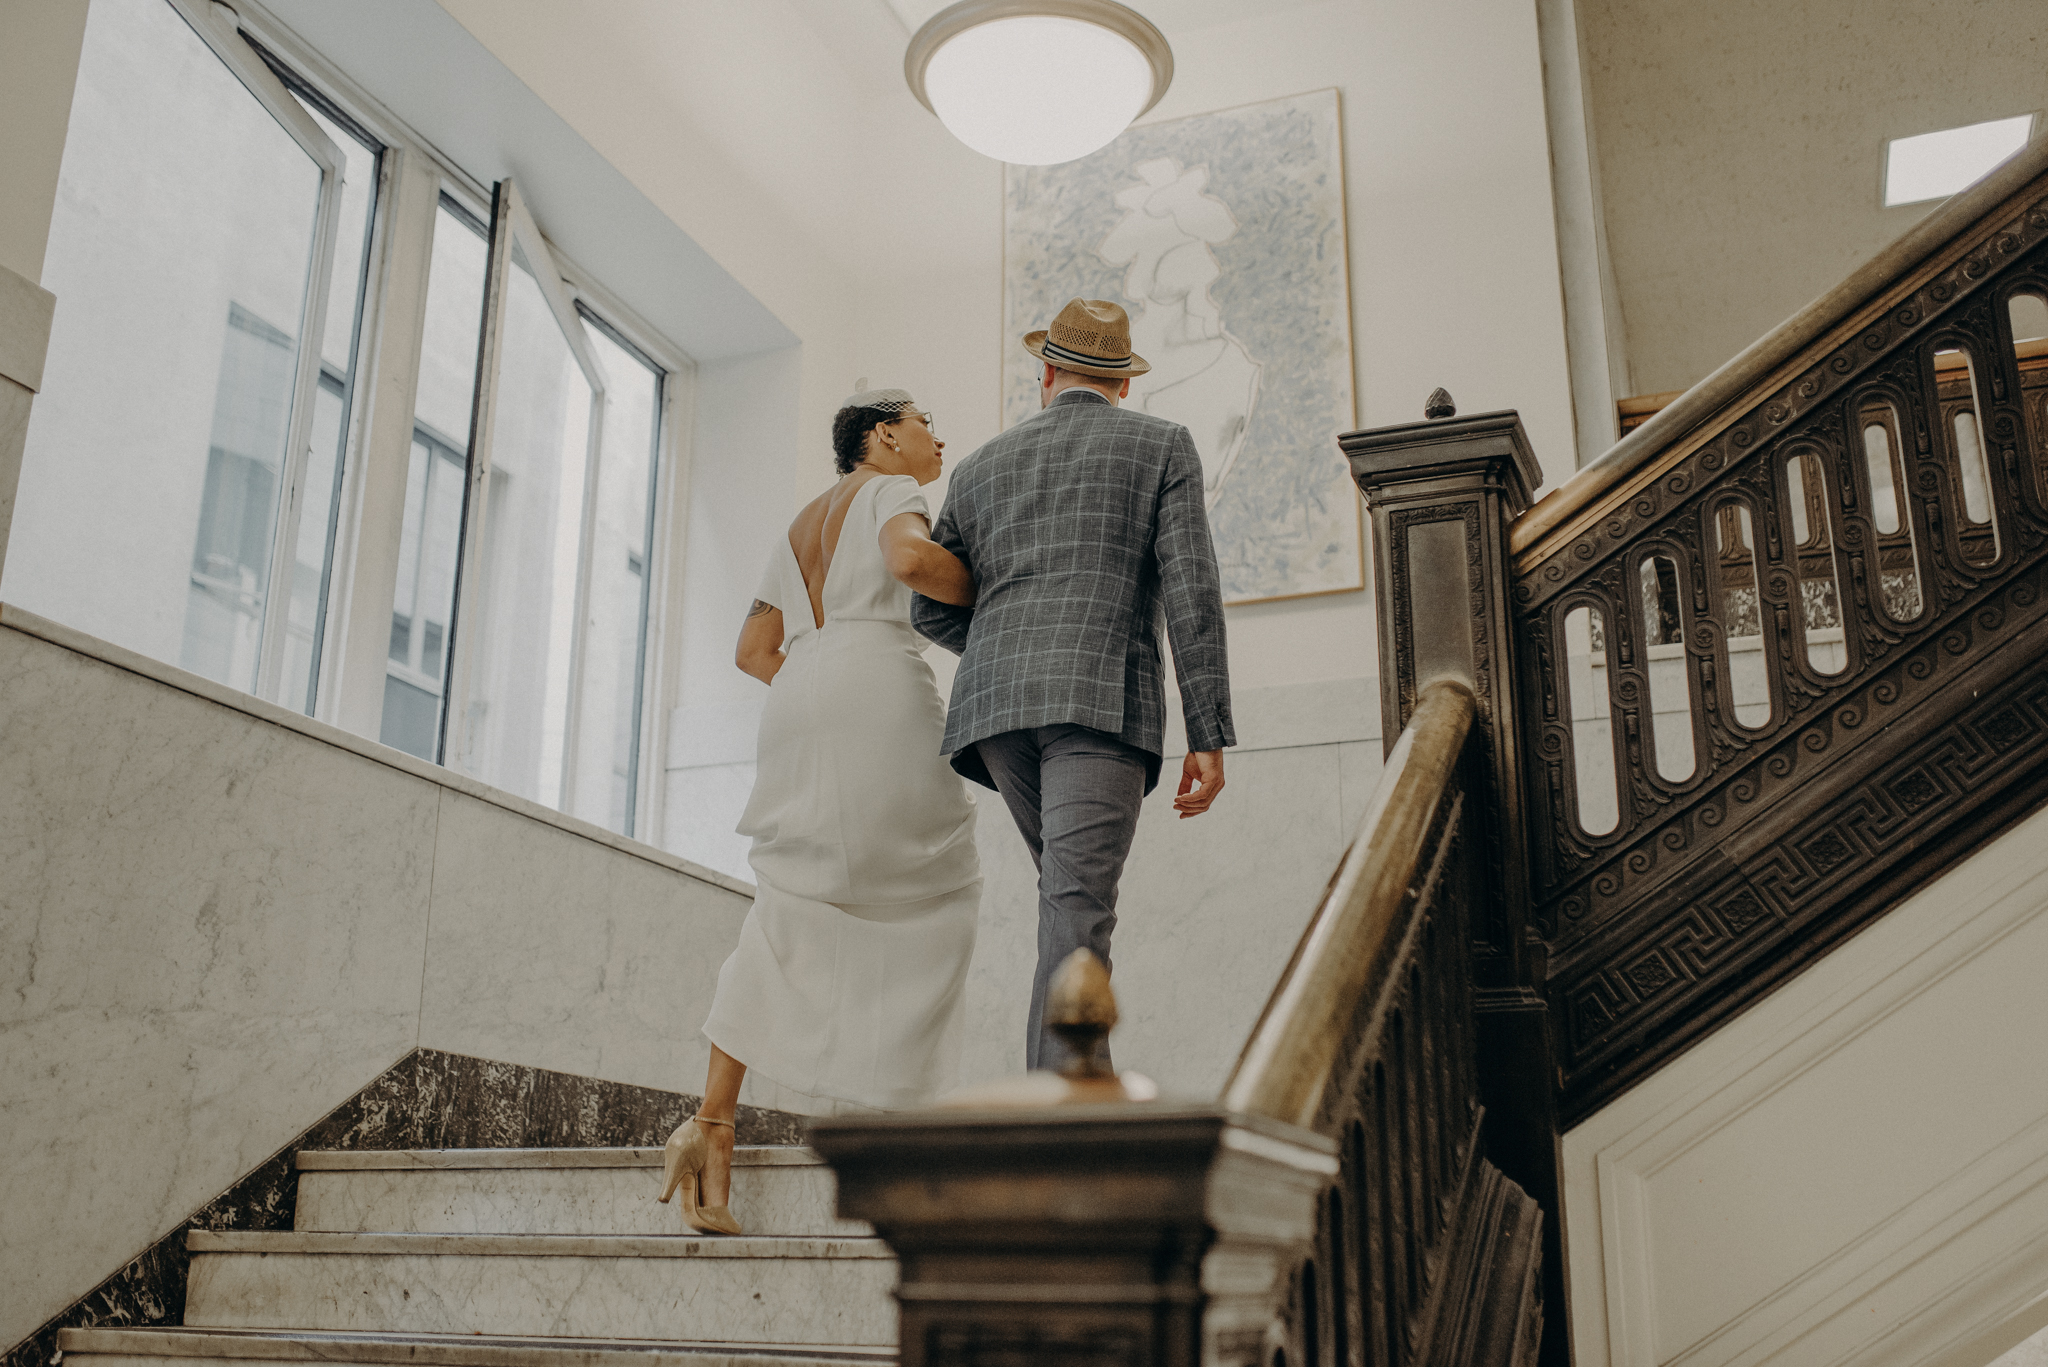 Los Angeles Wedding Photographer - Portland Elopement Photographer - IsaiahAndTaylor.com-003.jpg